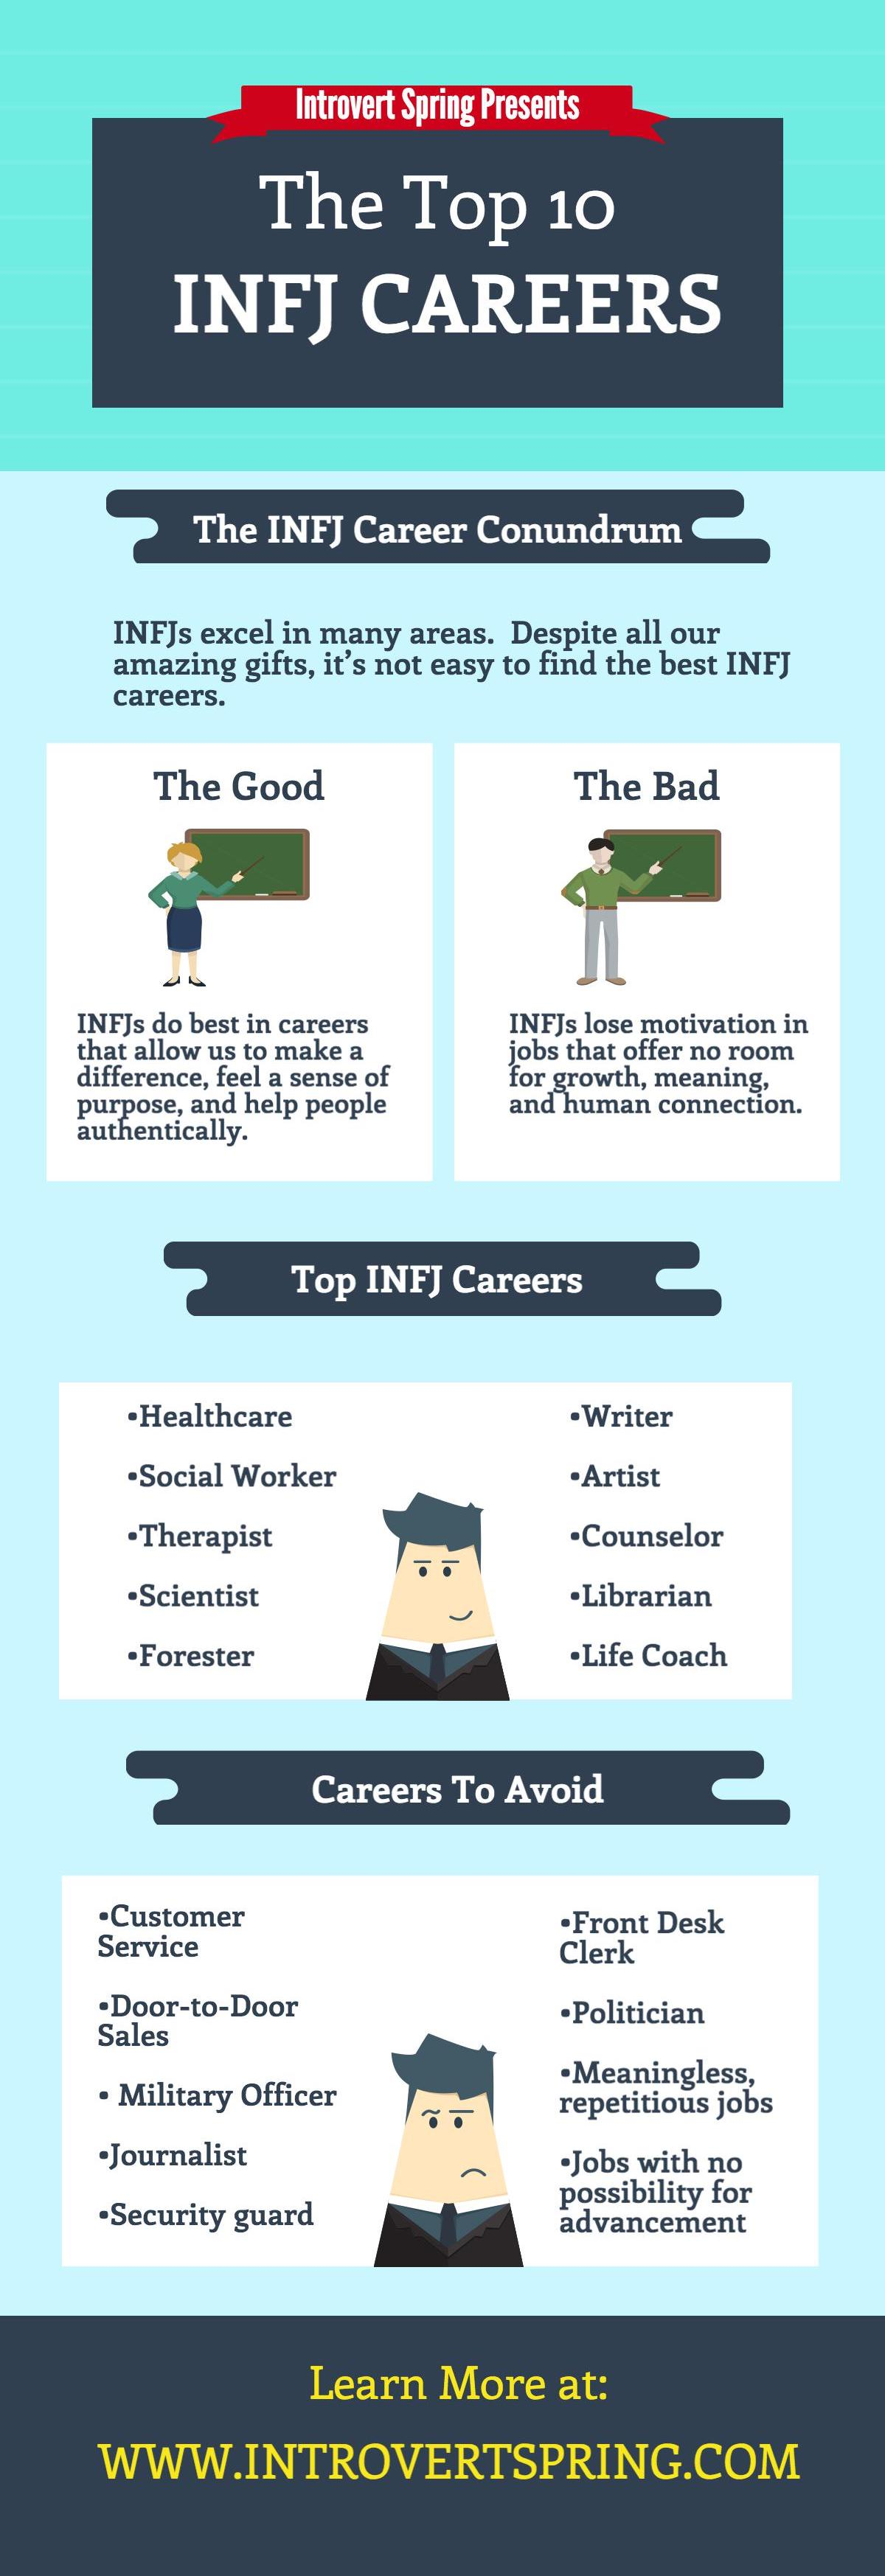 INFJ careers infographic